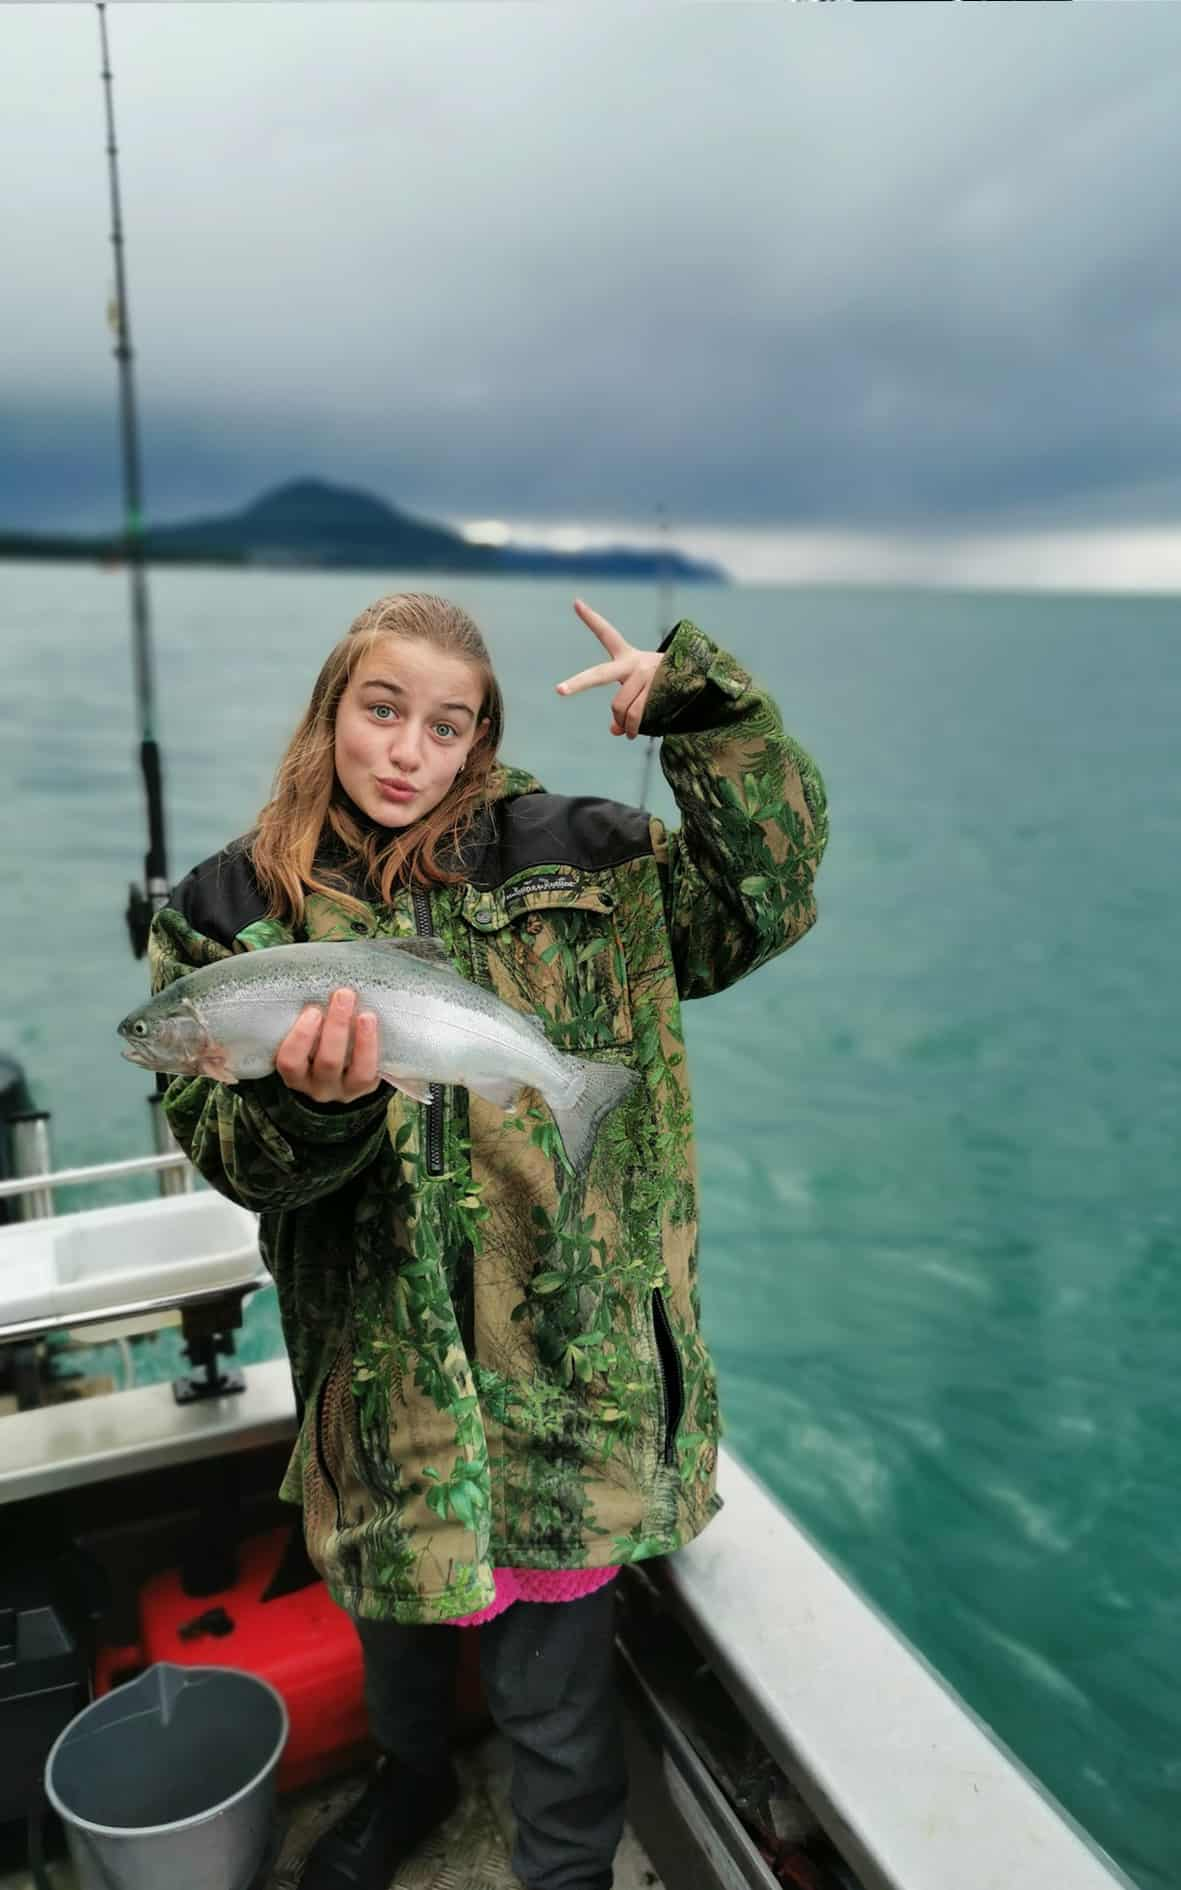 Girl_with_fish